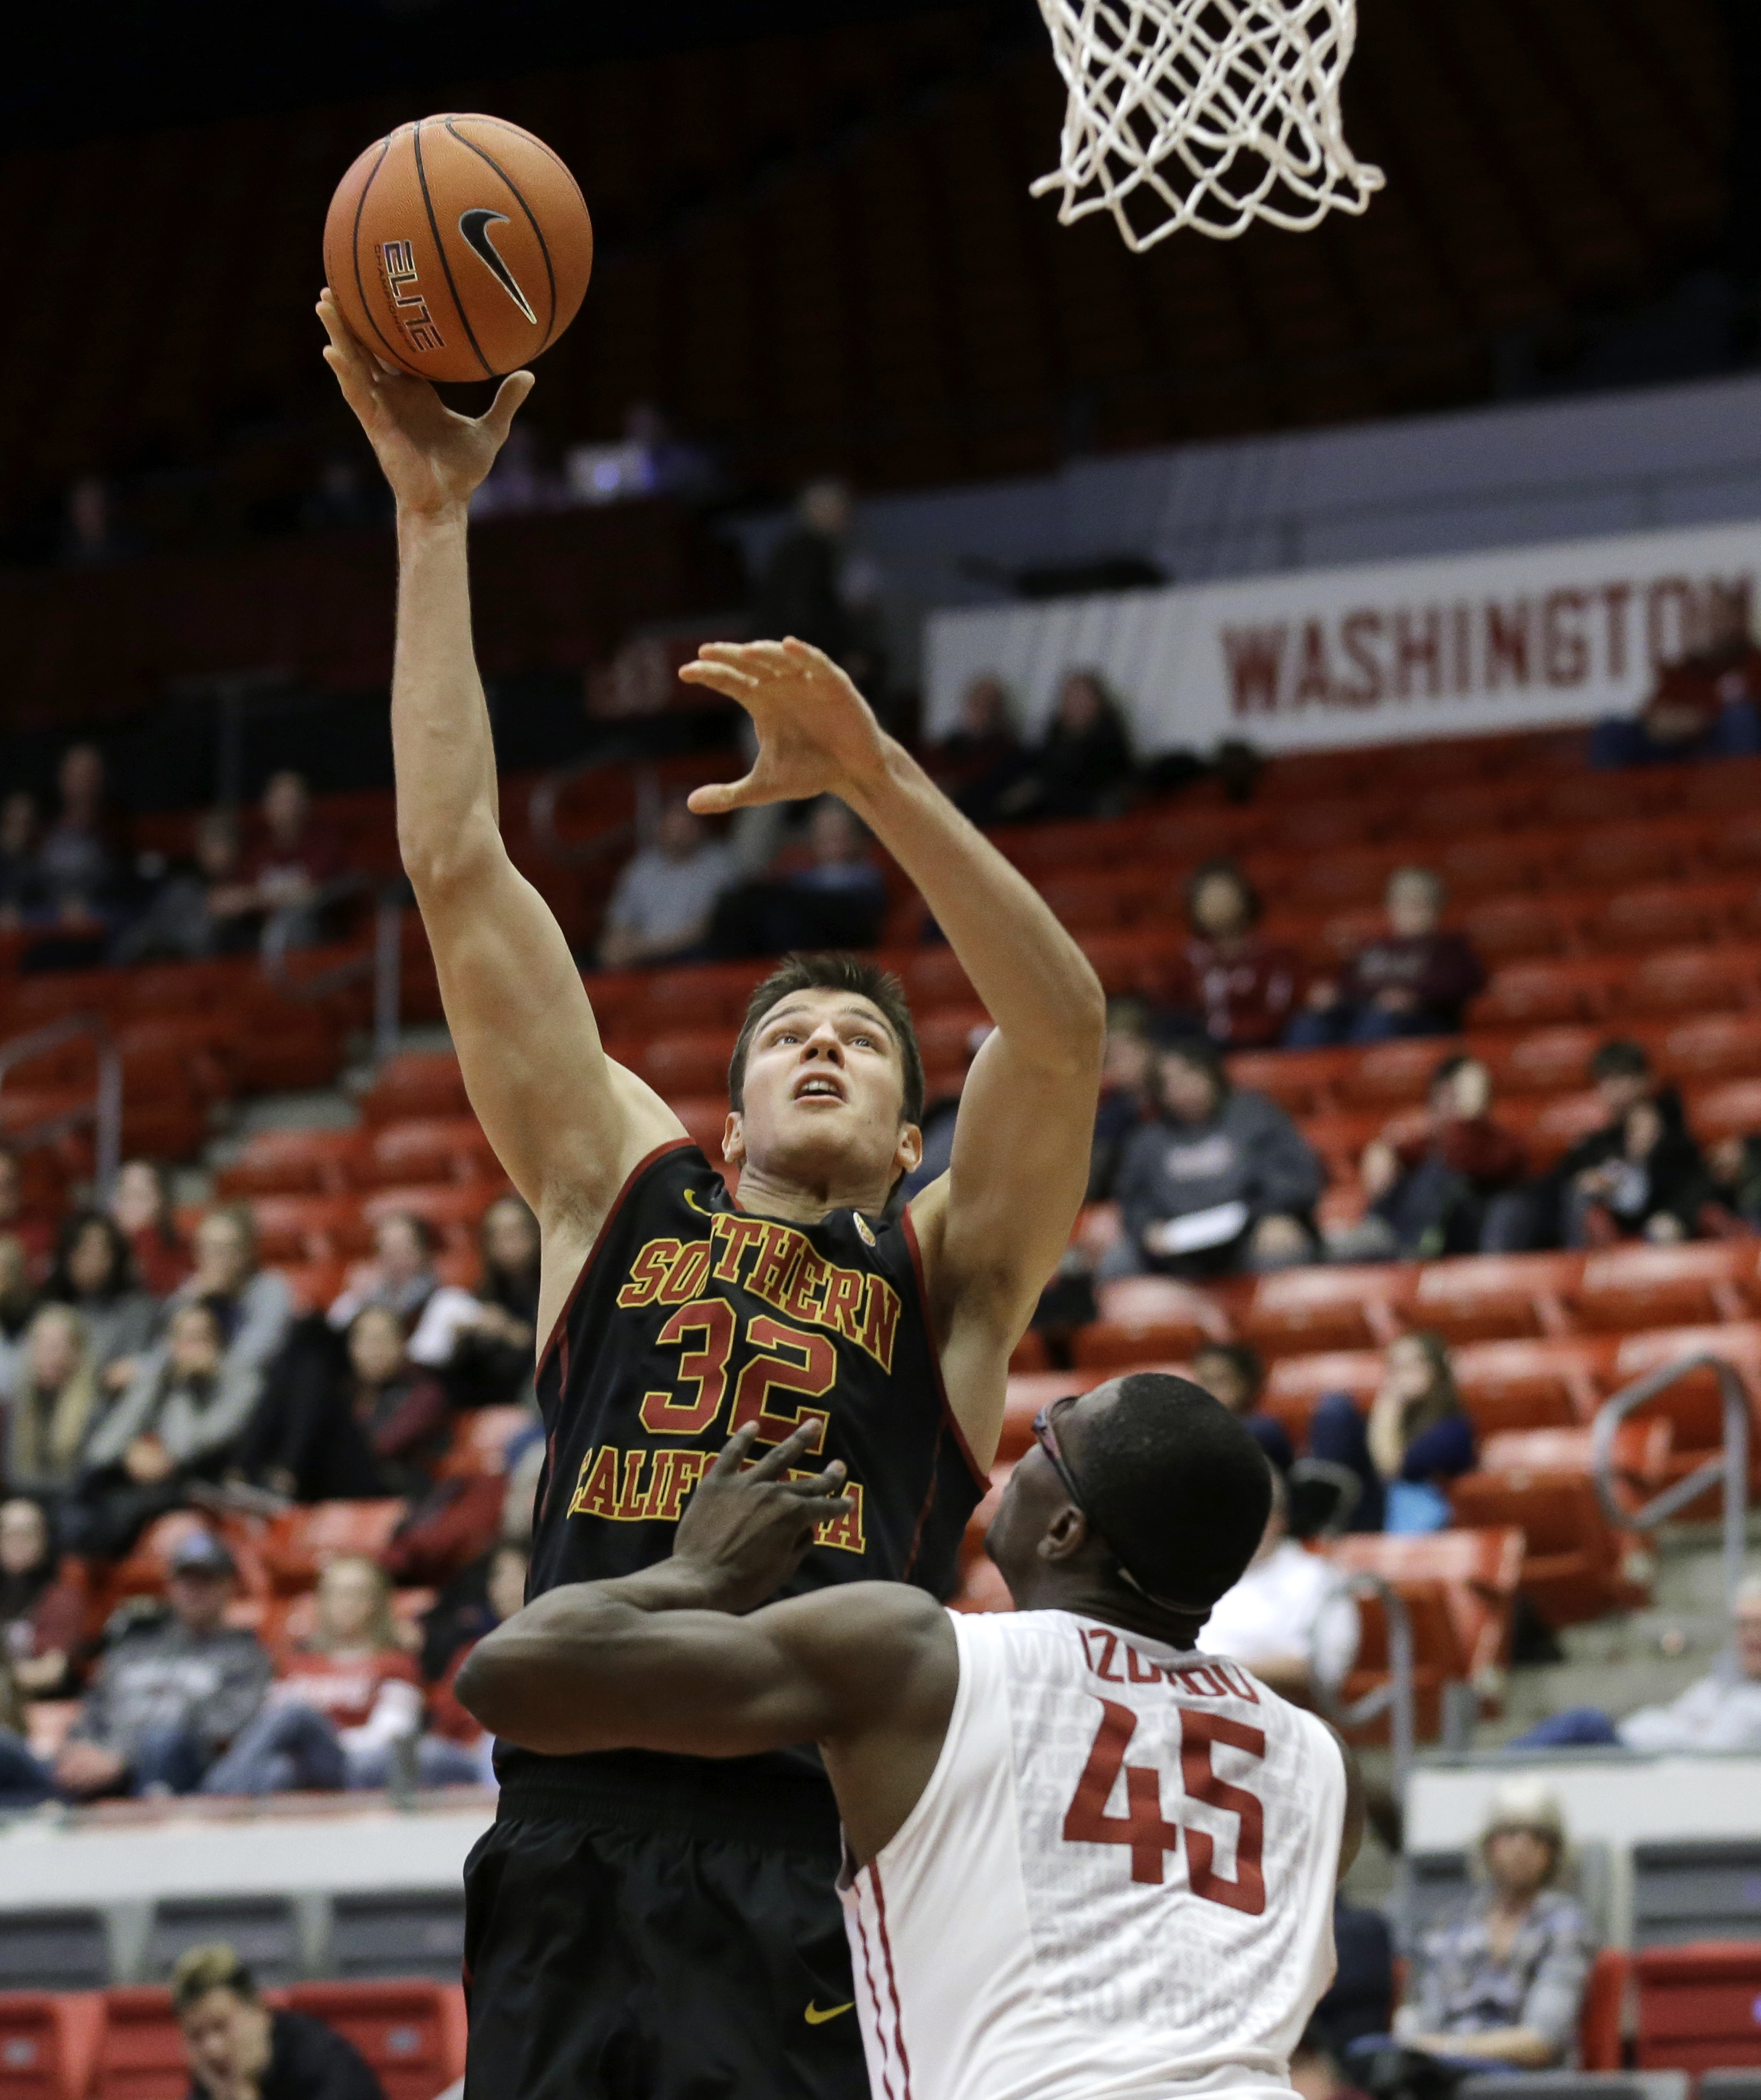 Southern California forward Nikola Jovanovic puts up a shot over Washington State center Valentine Izundu (45) in the second half of an NCAA college basketball game, Friday, Jan. 1, 2016, in Pullman, Wash. Jovanovic had 20 points as to lead Southern Calif